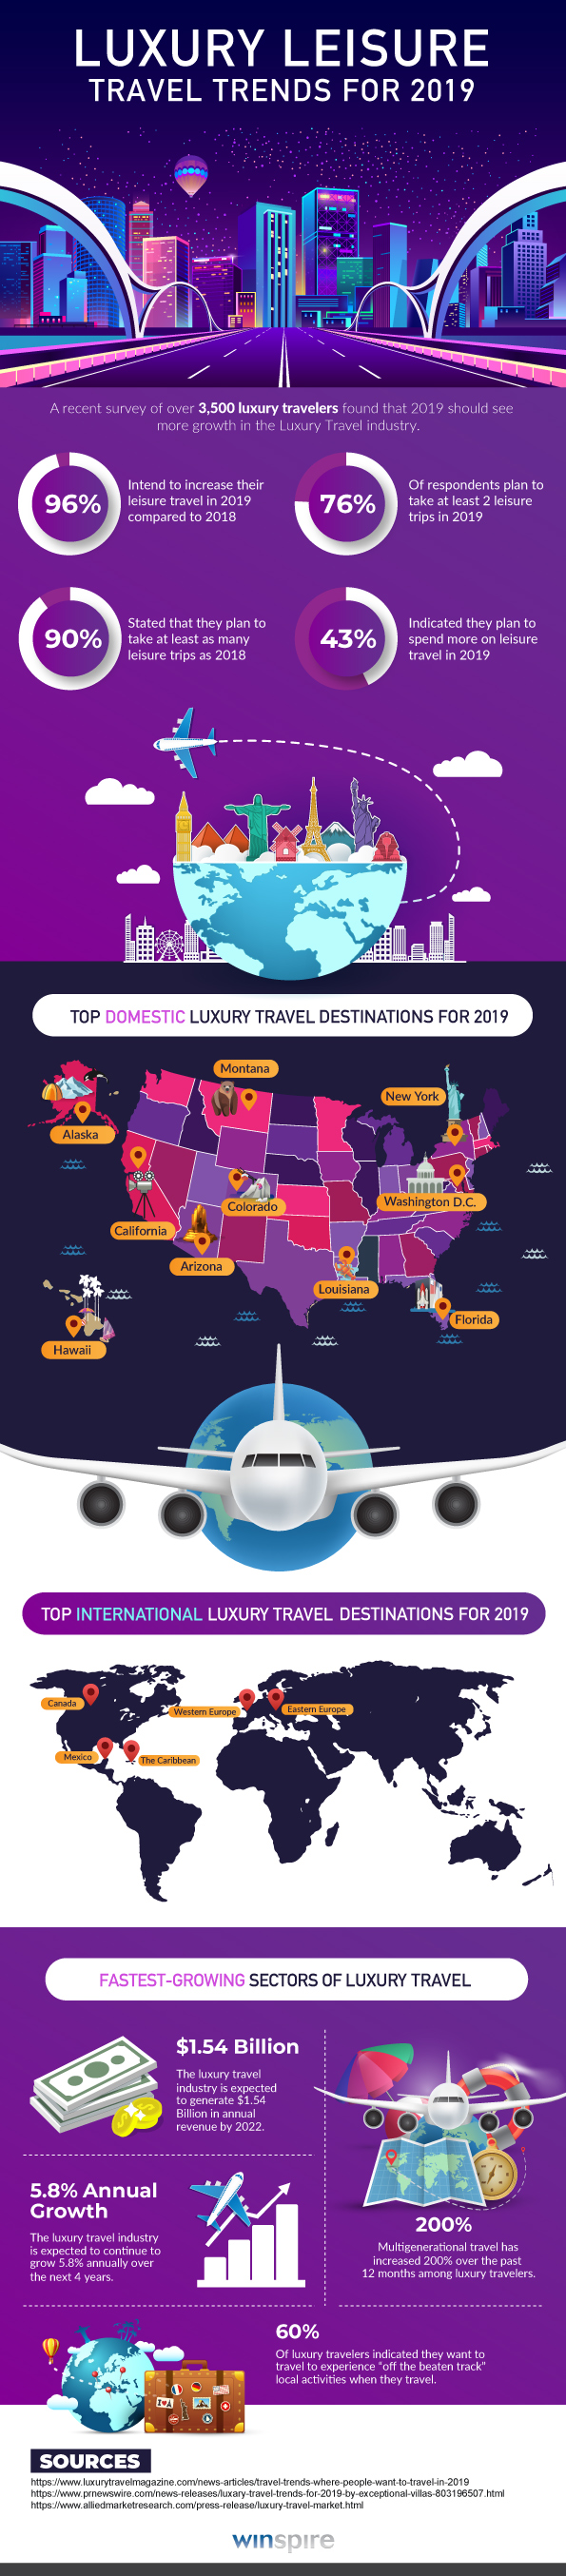 Luxury Leisure Travel Trends for 2019 Infographic